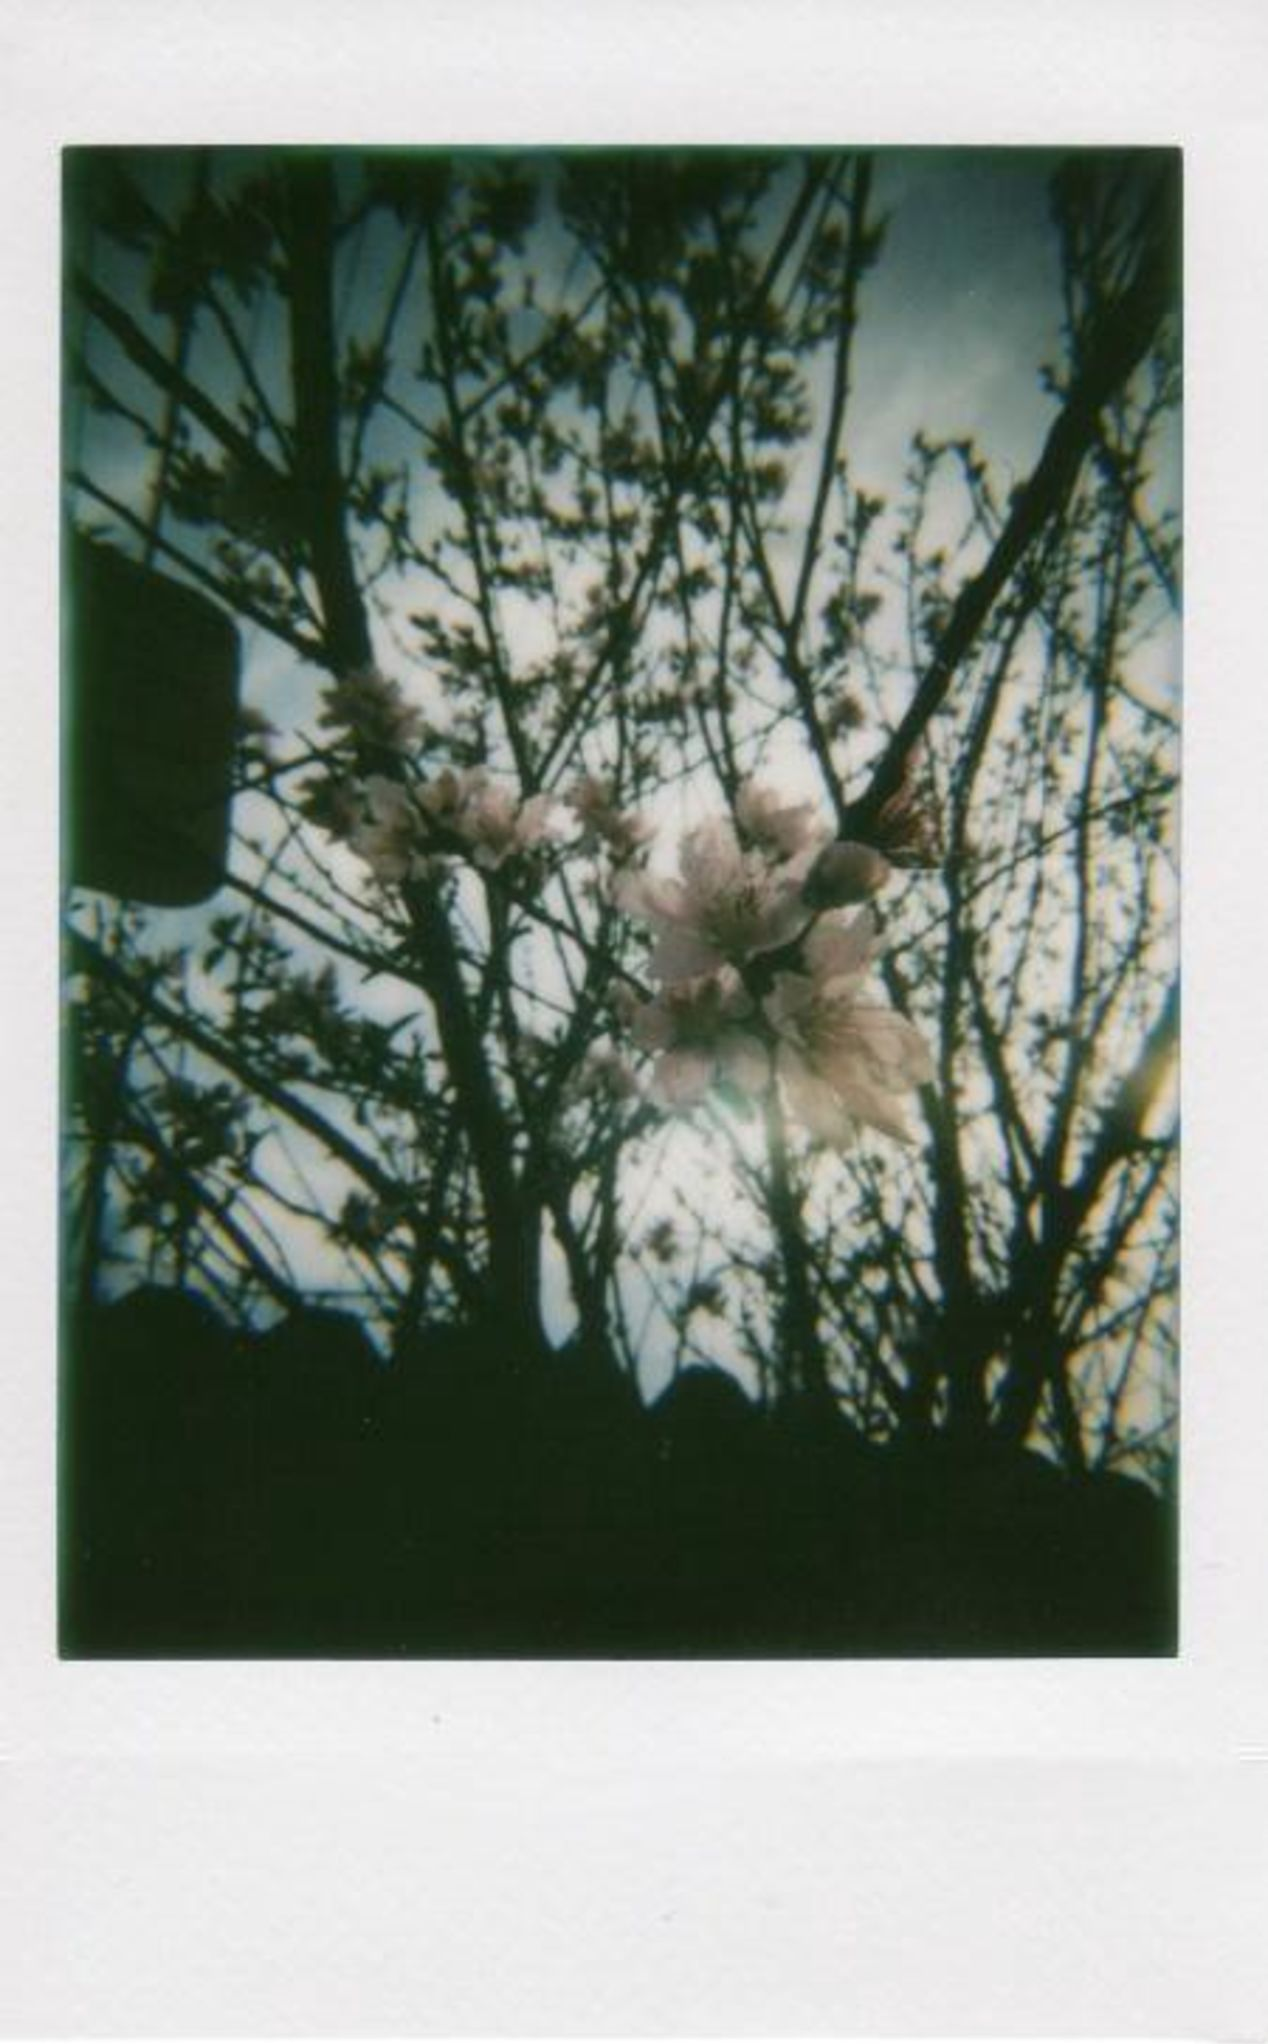 Photo of a blooming flower as spring approaches. It's a little dark because I'm still fumbling my way around with the new Lomo Instant.